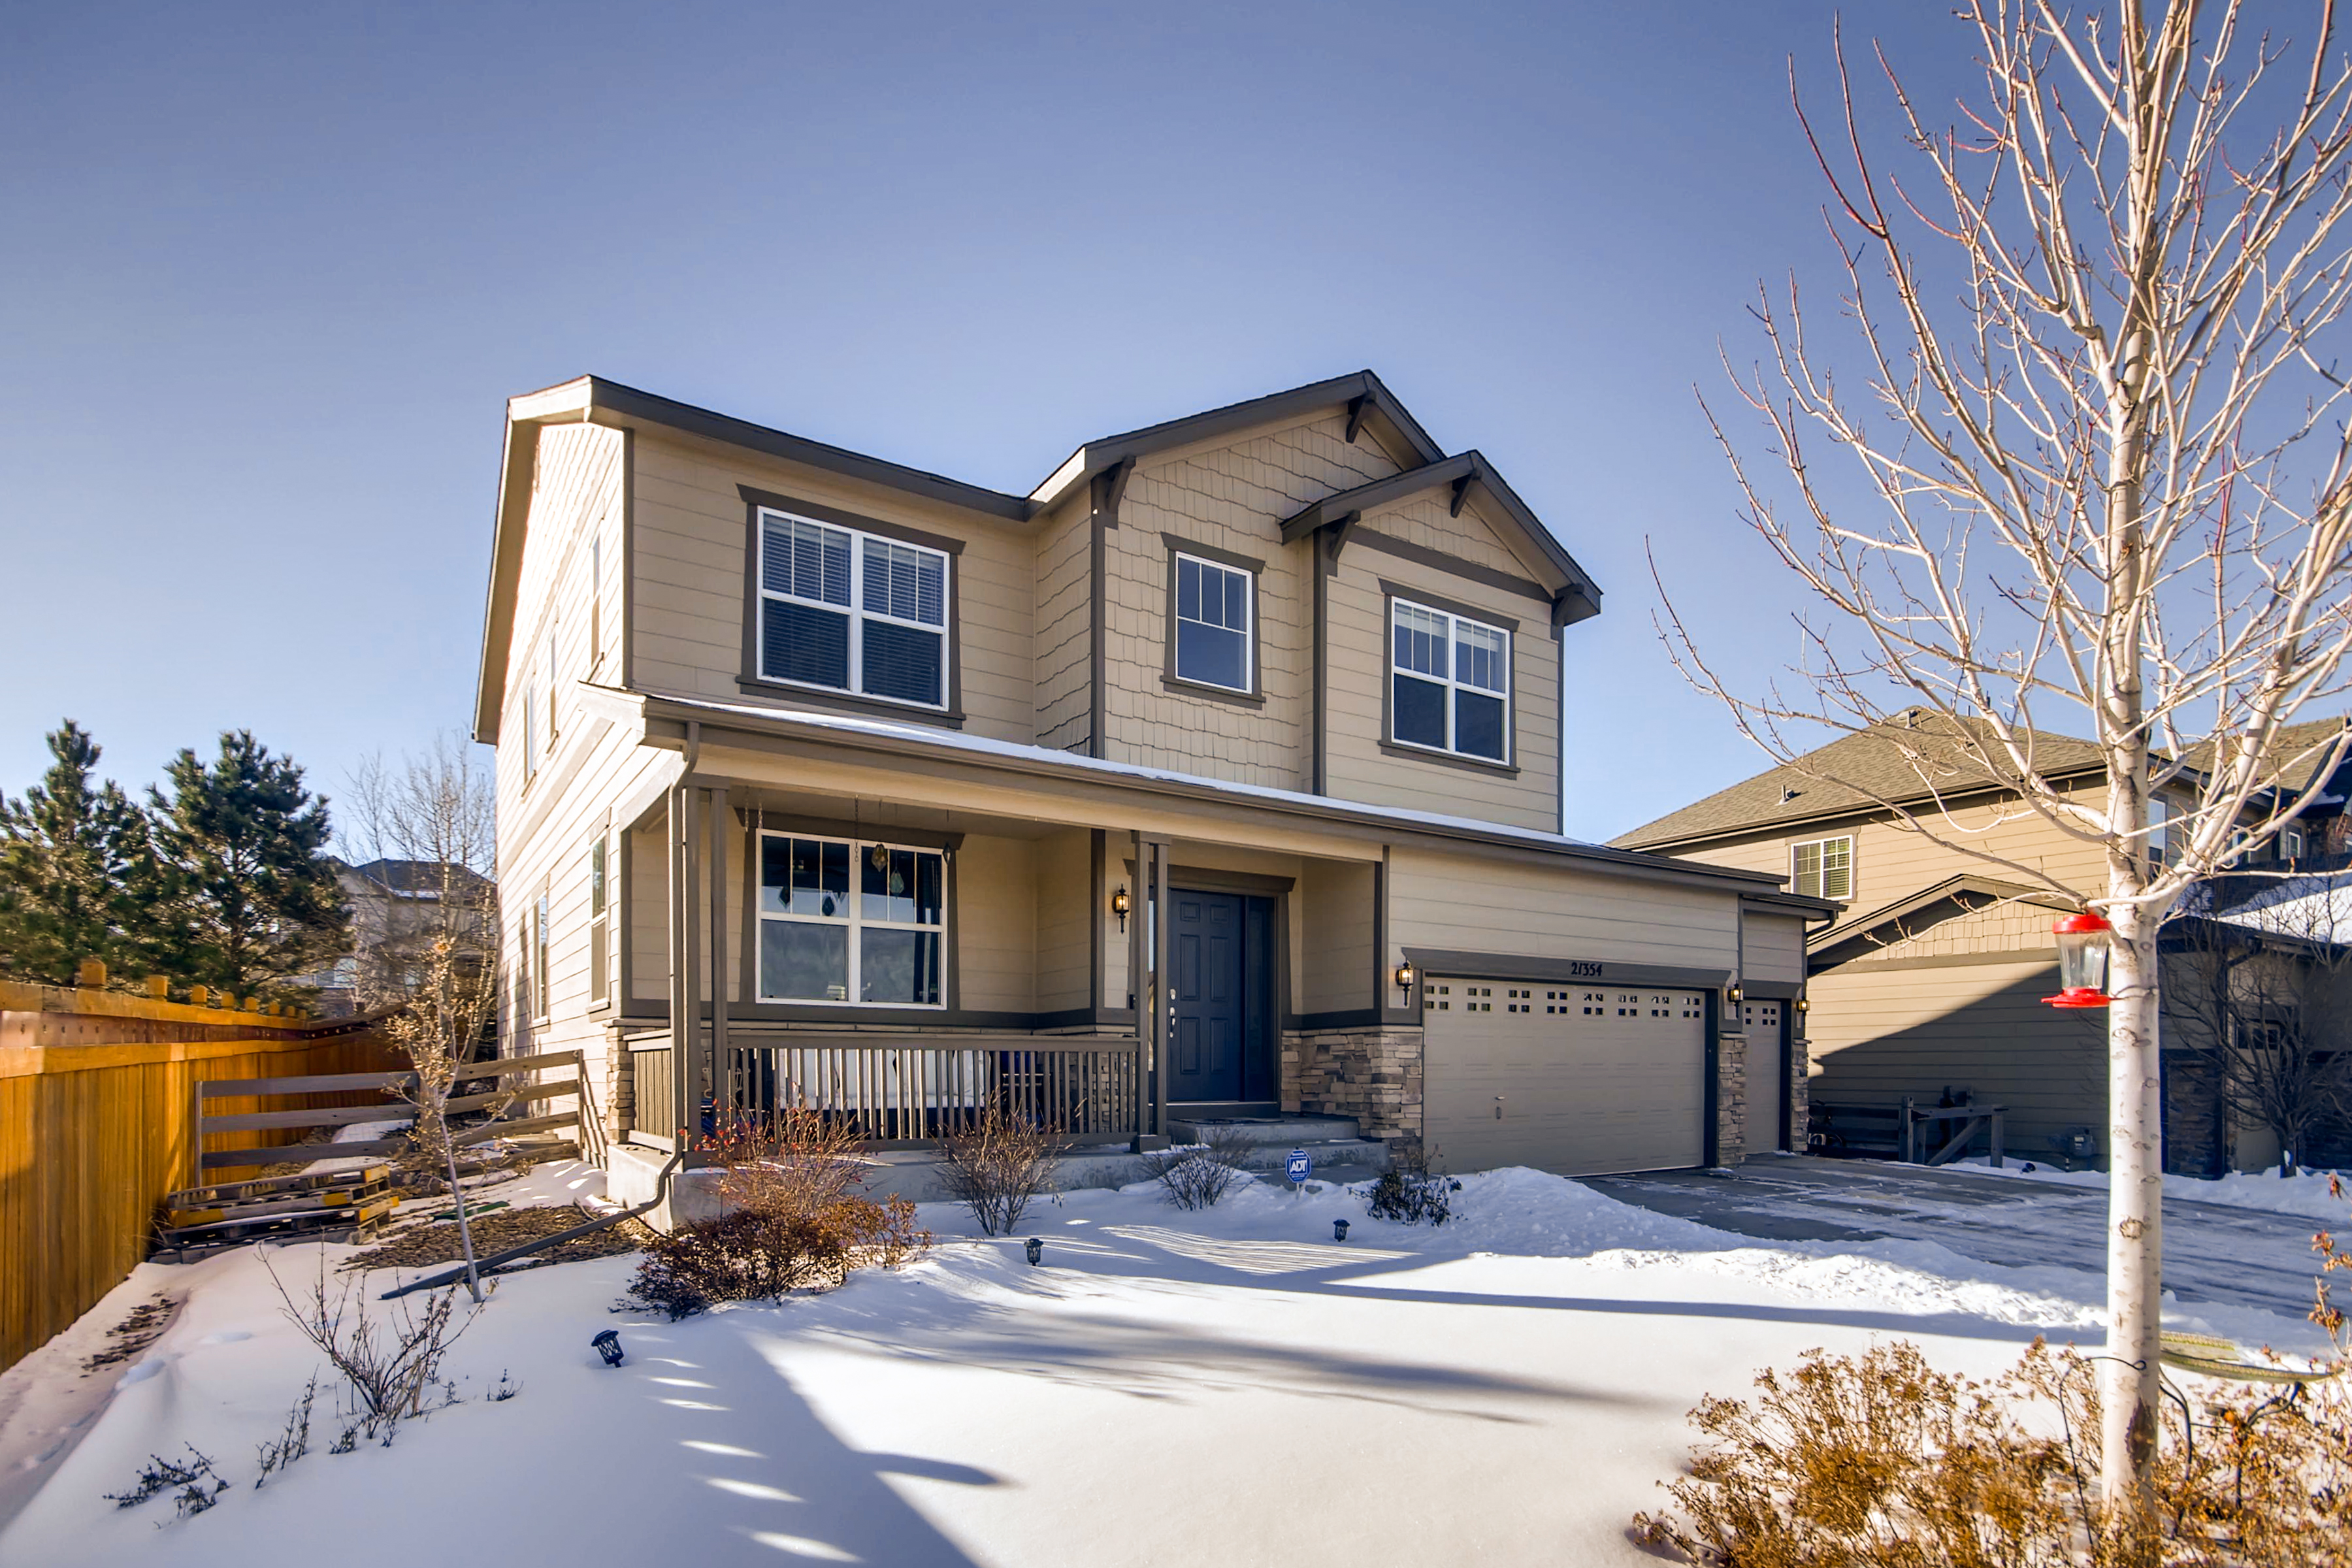 Gorgeous two-story home in the desirable Copperleaf community!